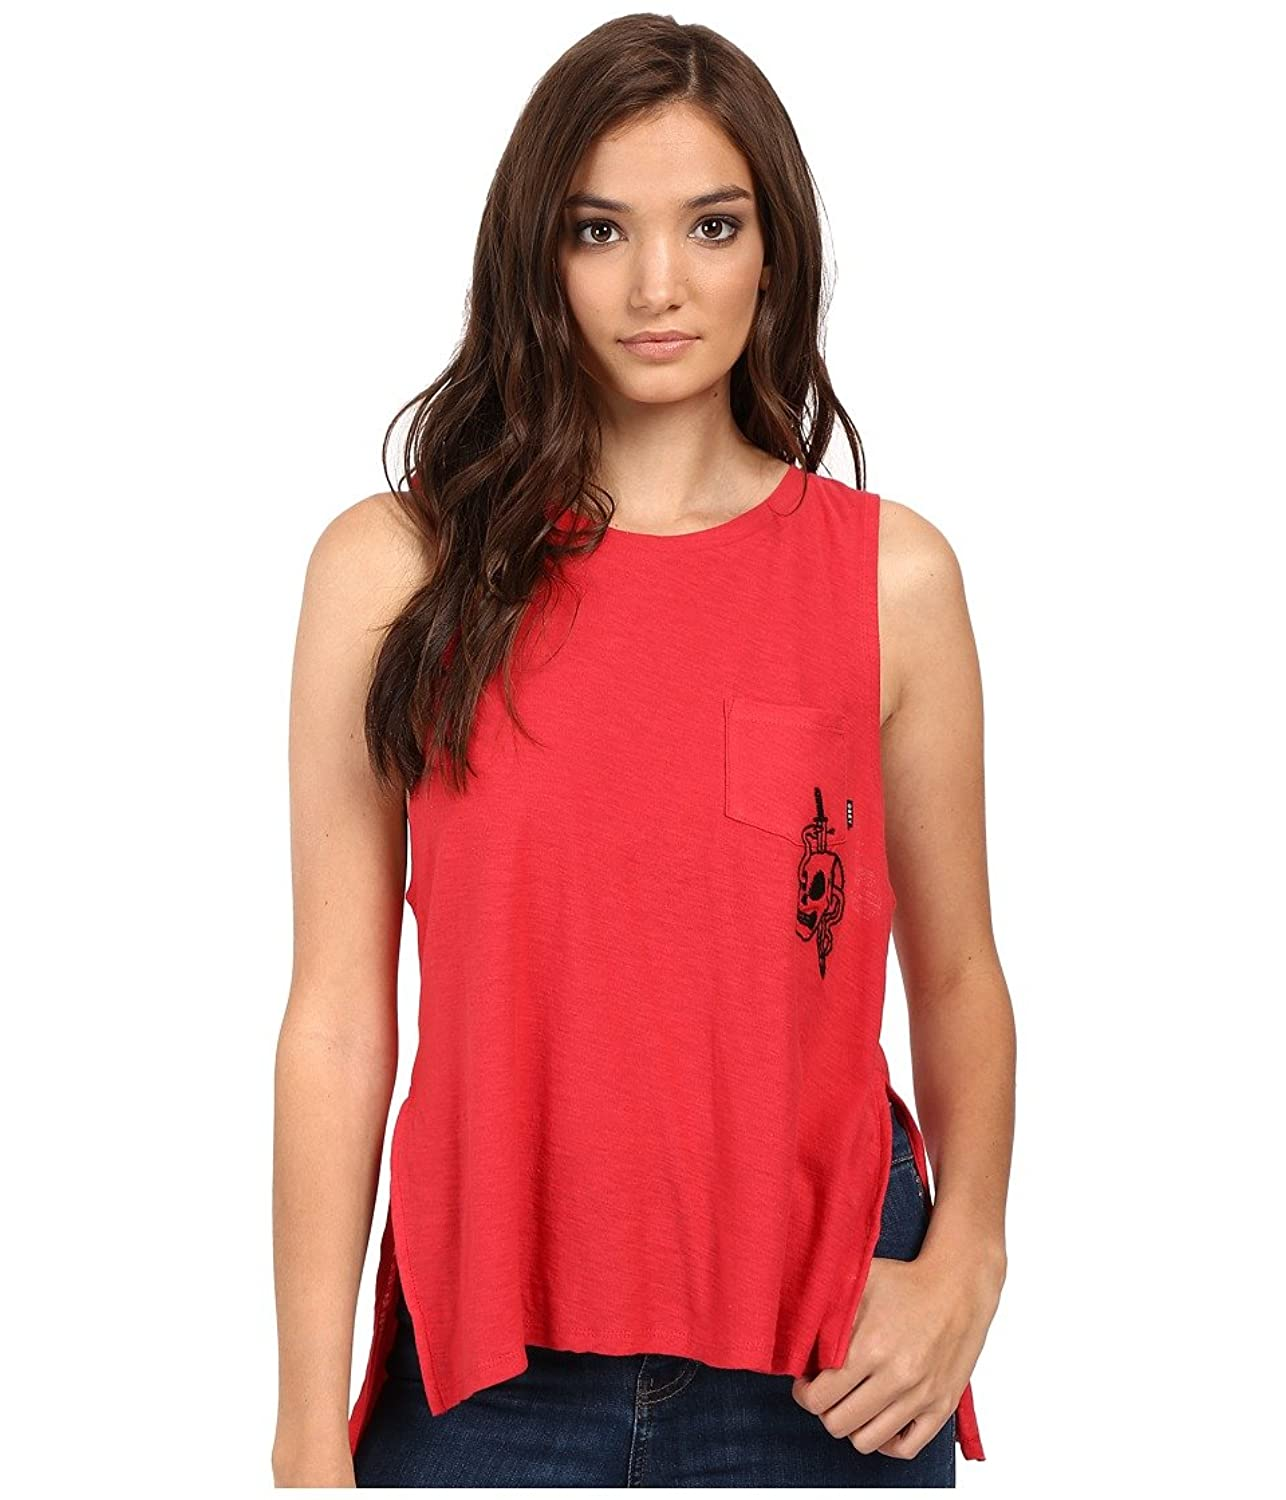 Obey Women's Harper Embroidered Tank Top